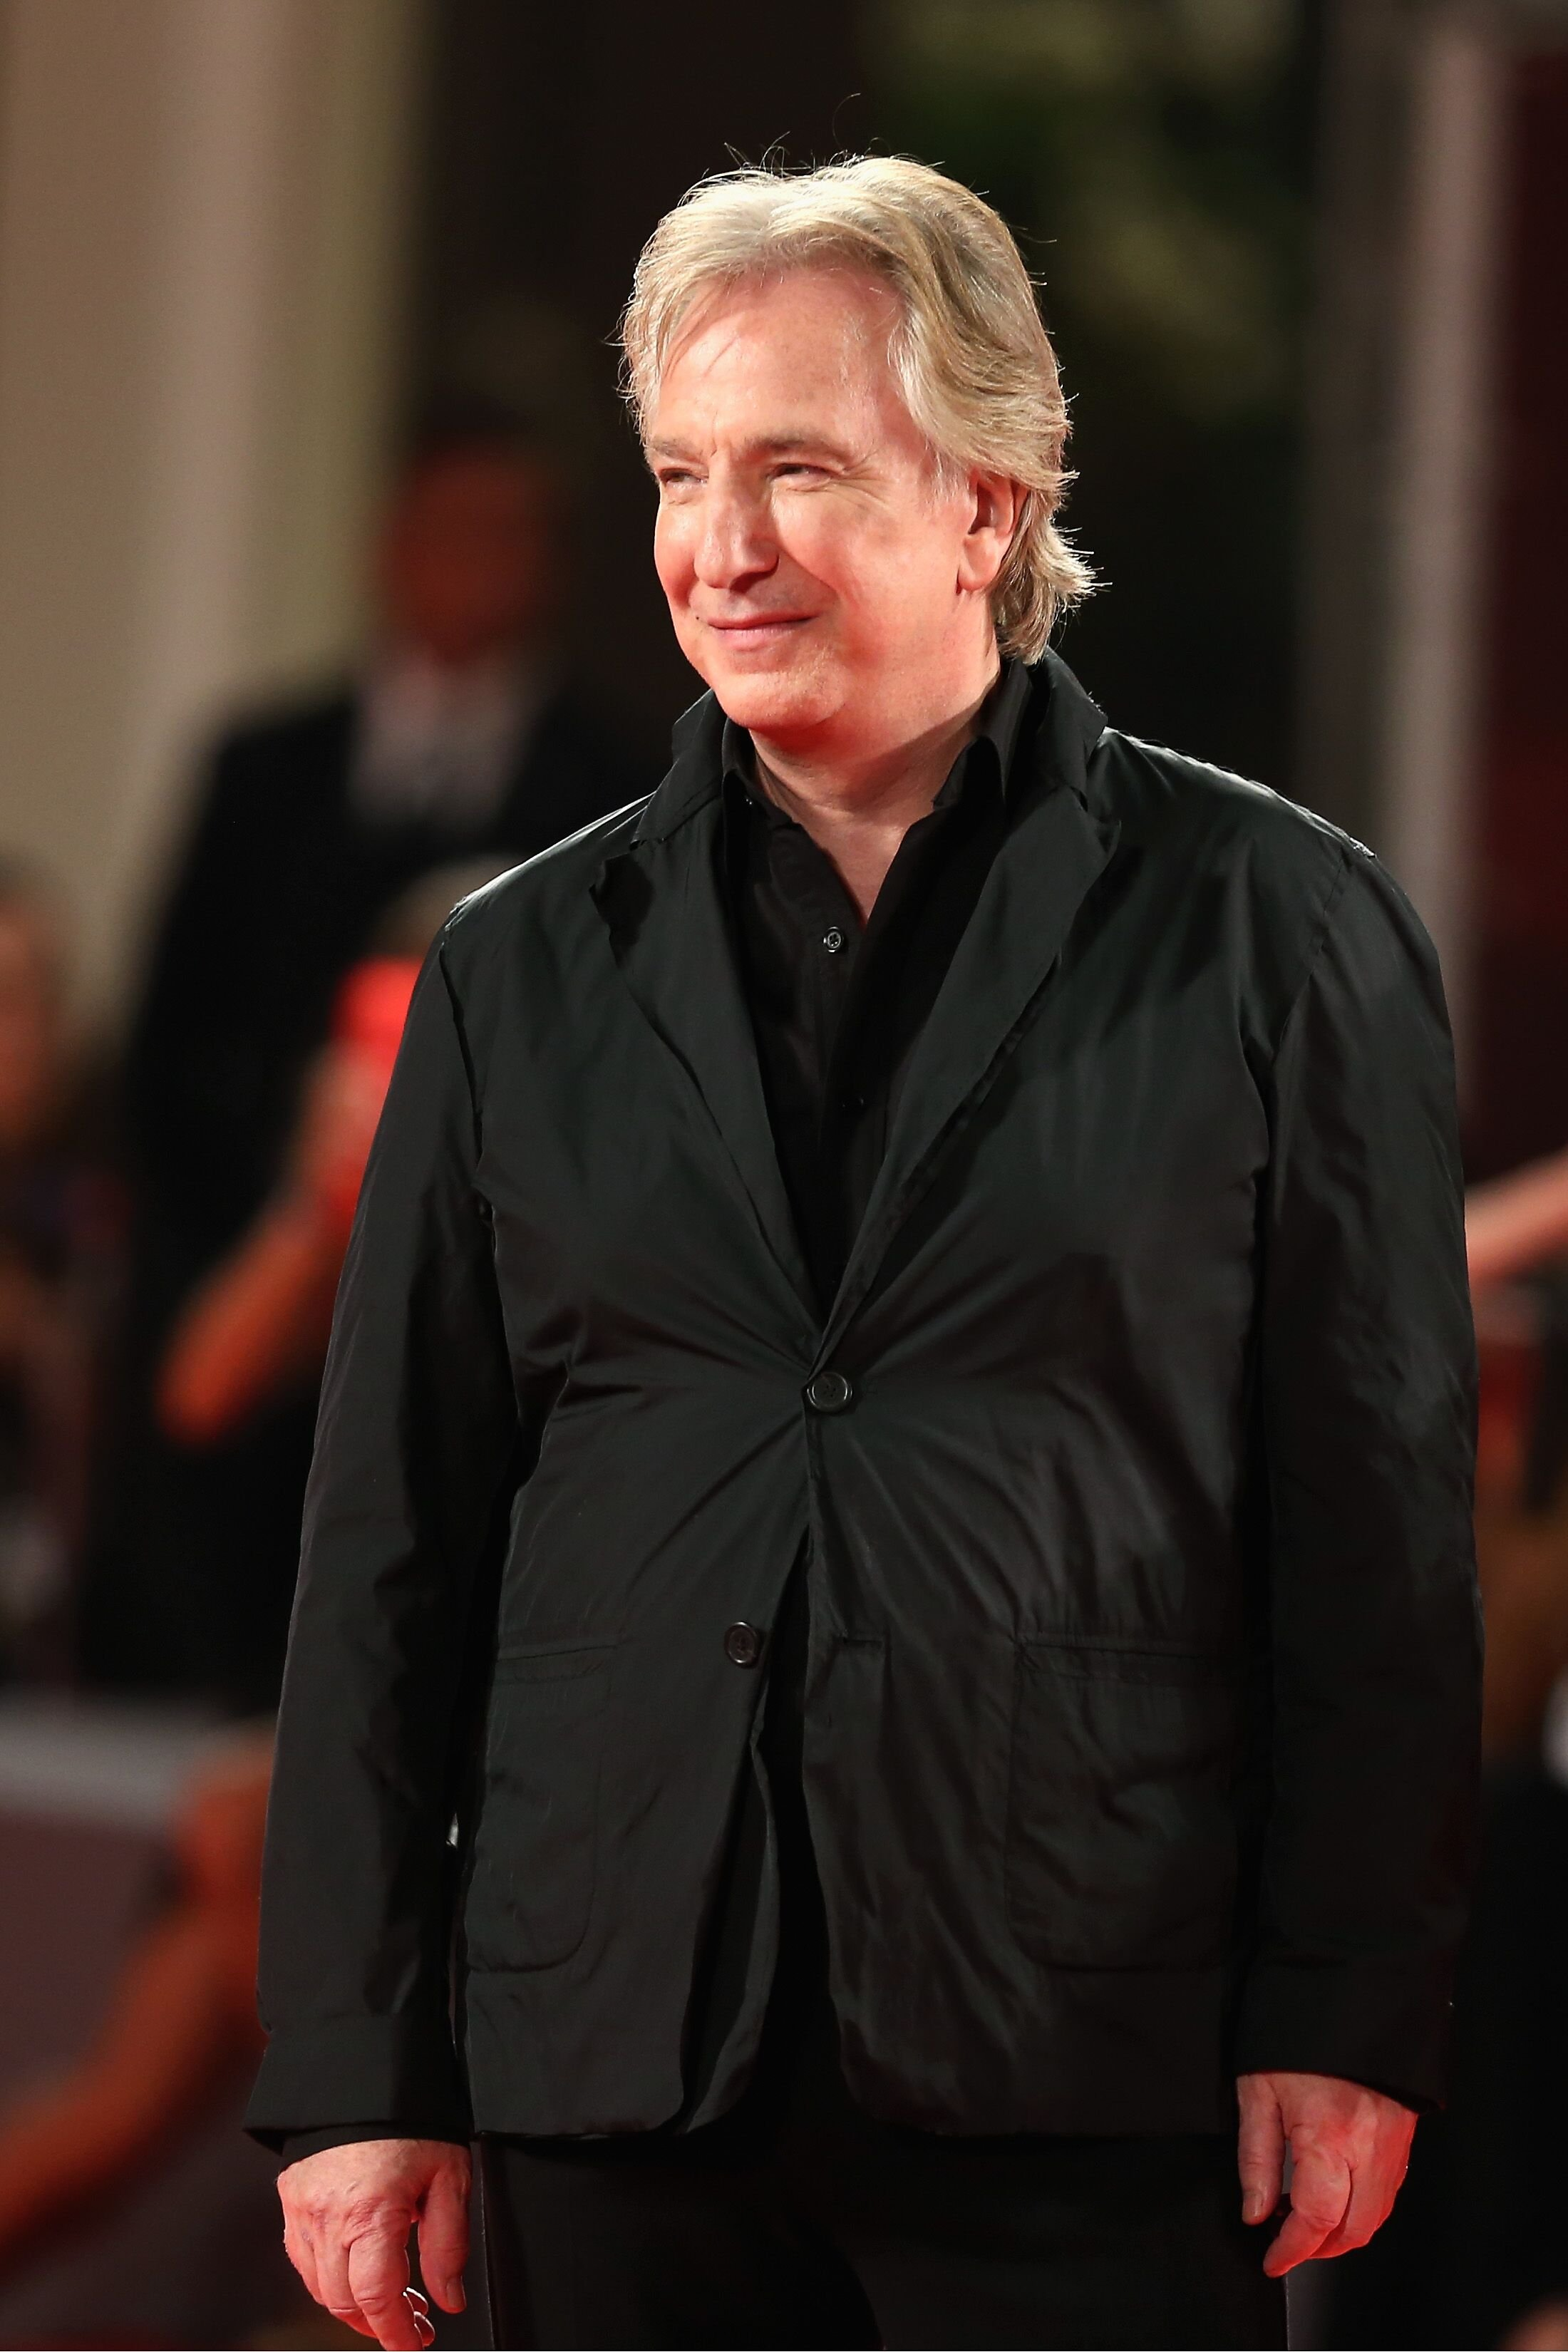 Alan Rickman attends the 'Une Promesse' Premiere. | Source: Getty Images